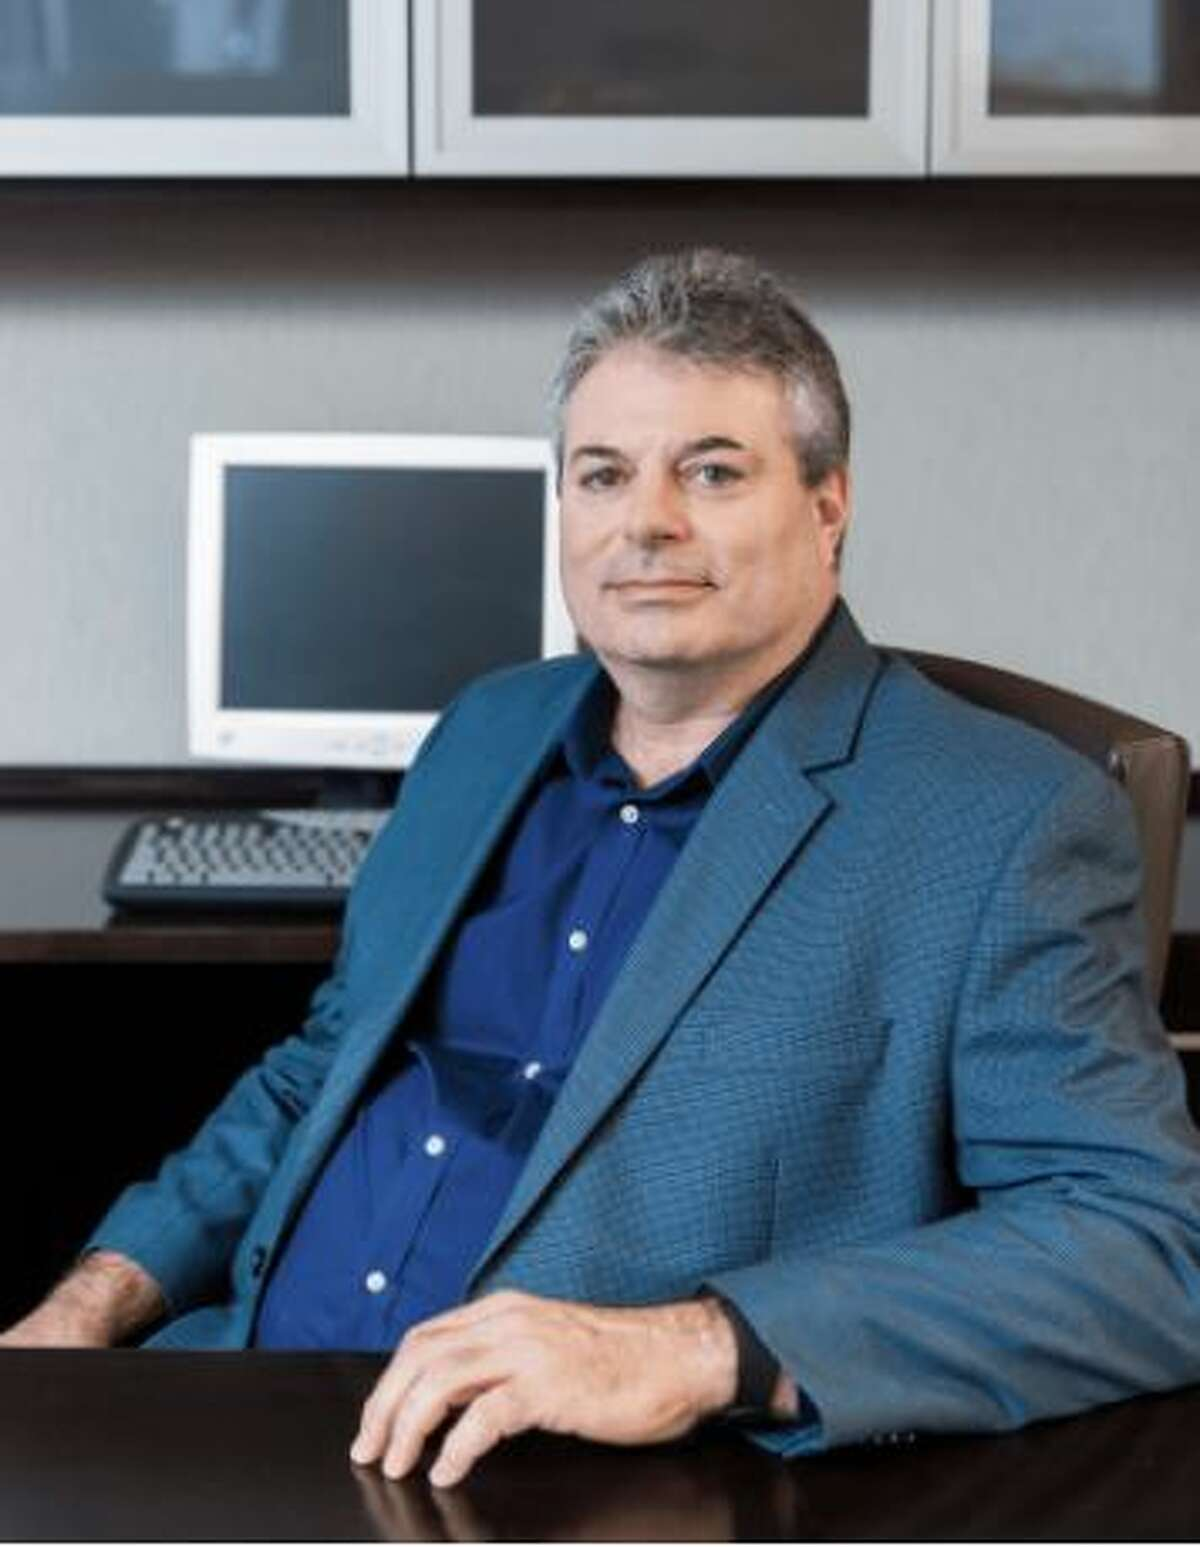 Rod Dion, owner of Tech Valley Office Interiors